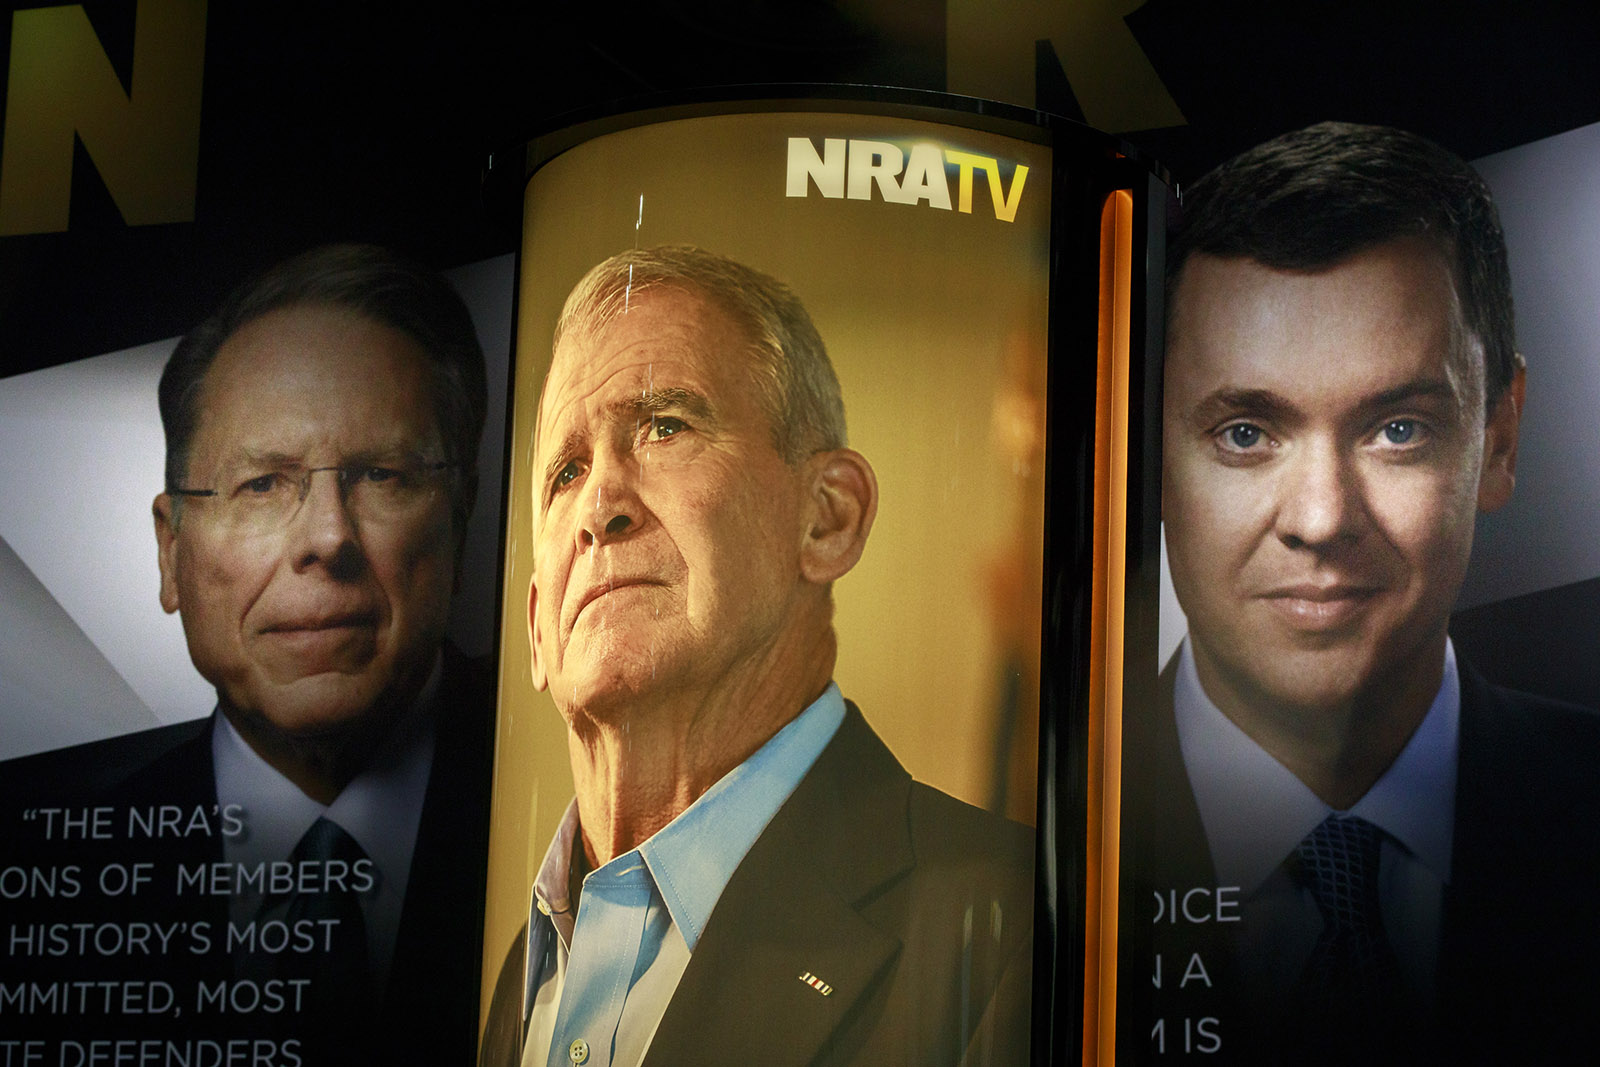 The Cold, Dead Hand of the NRA